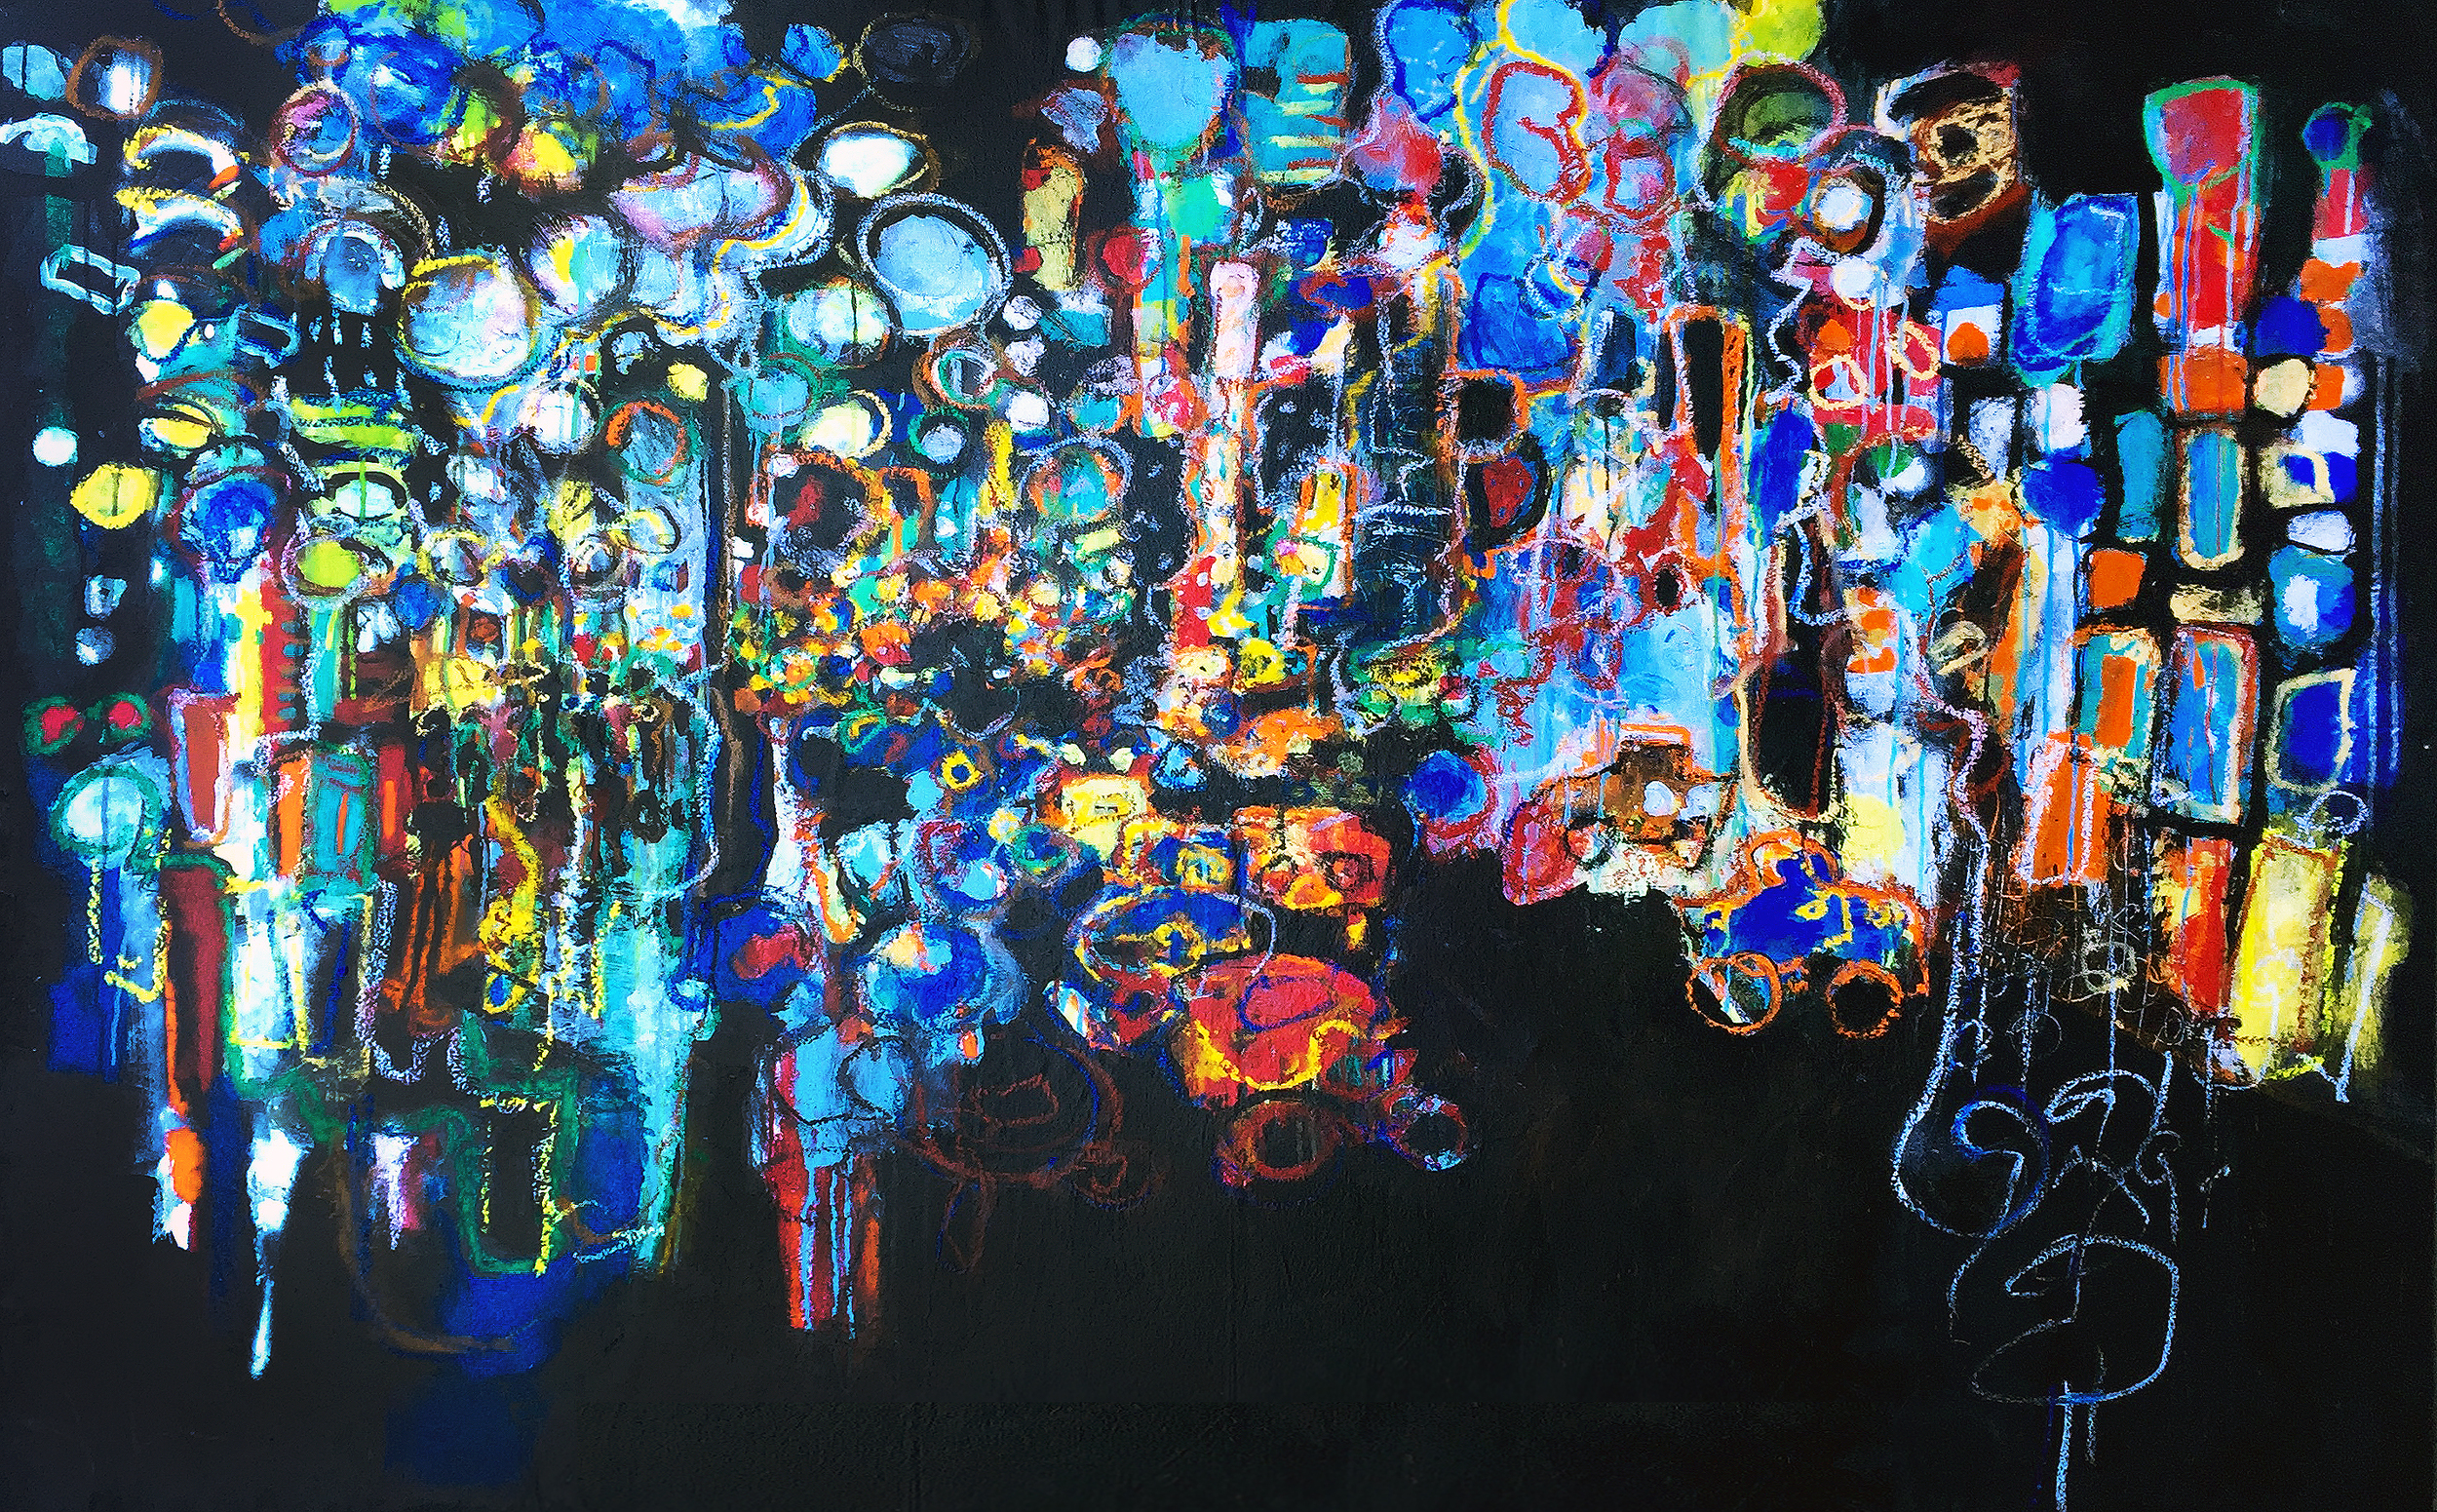 The City of Lights - Oil and Acrylic on canvas - SOLD